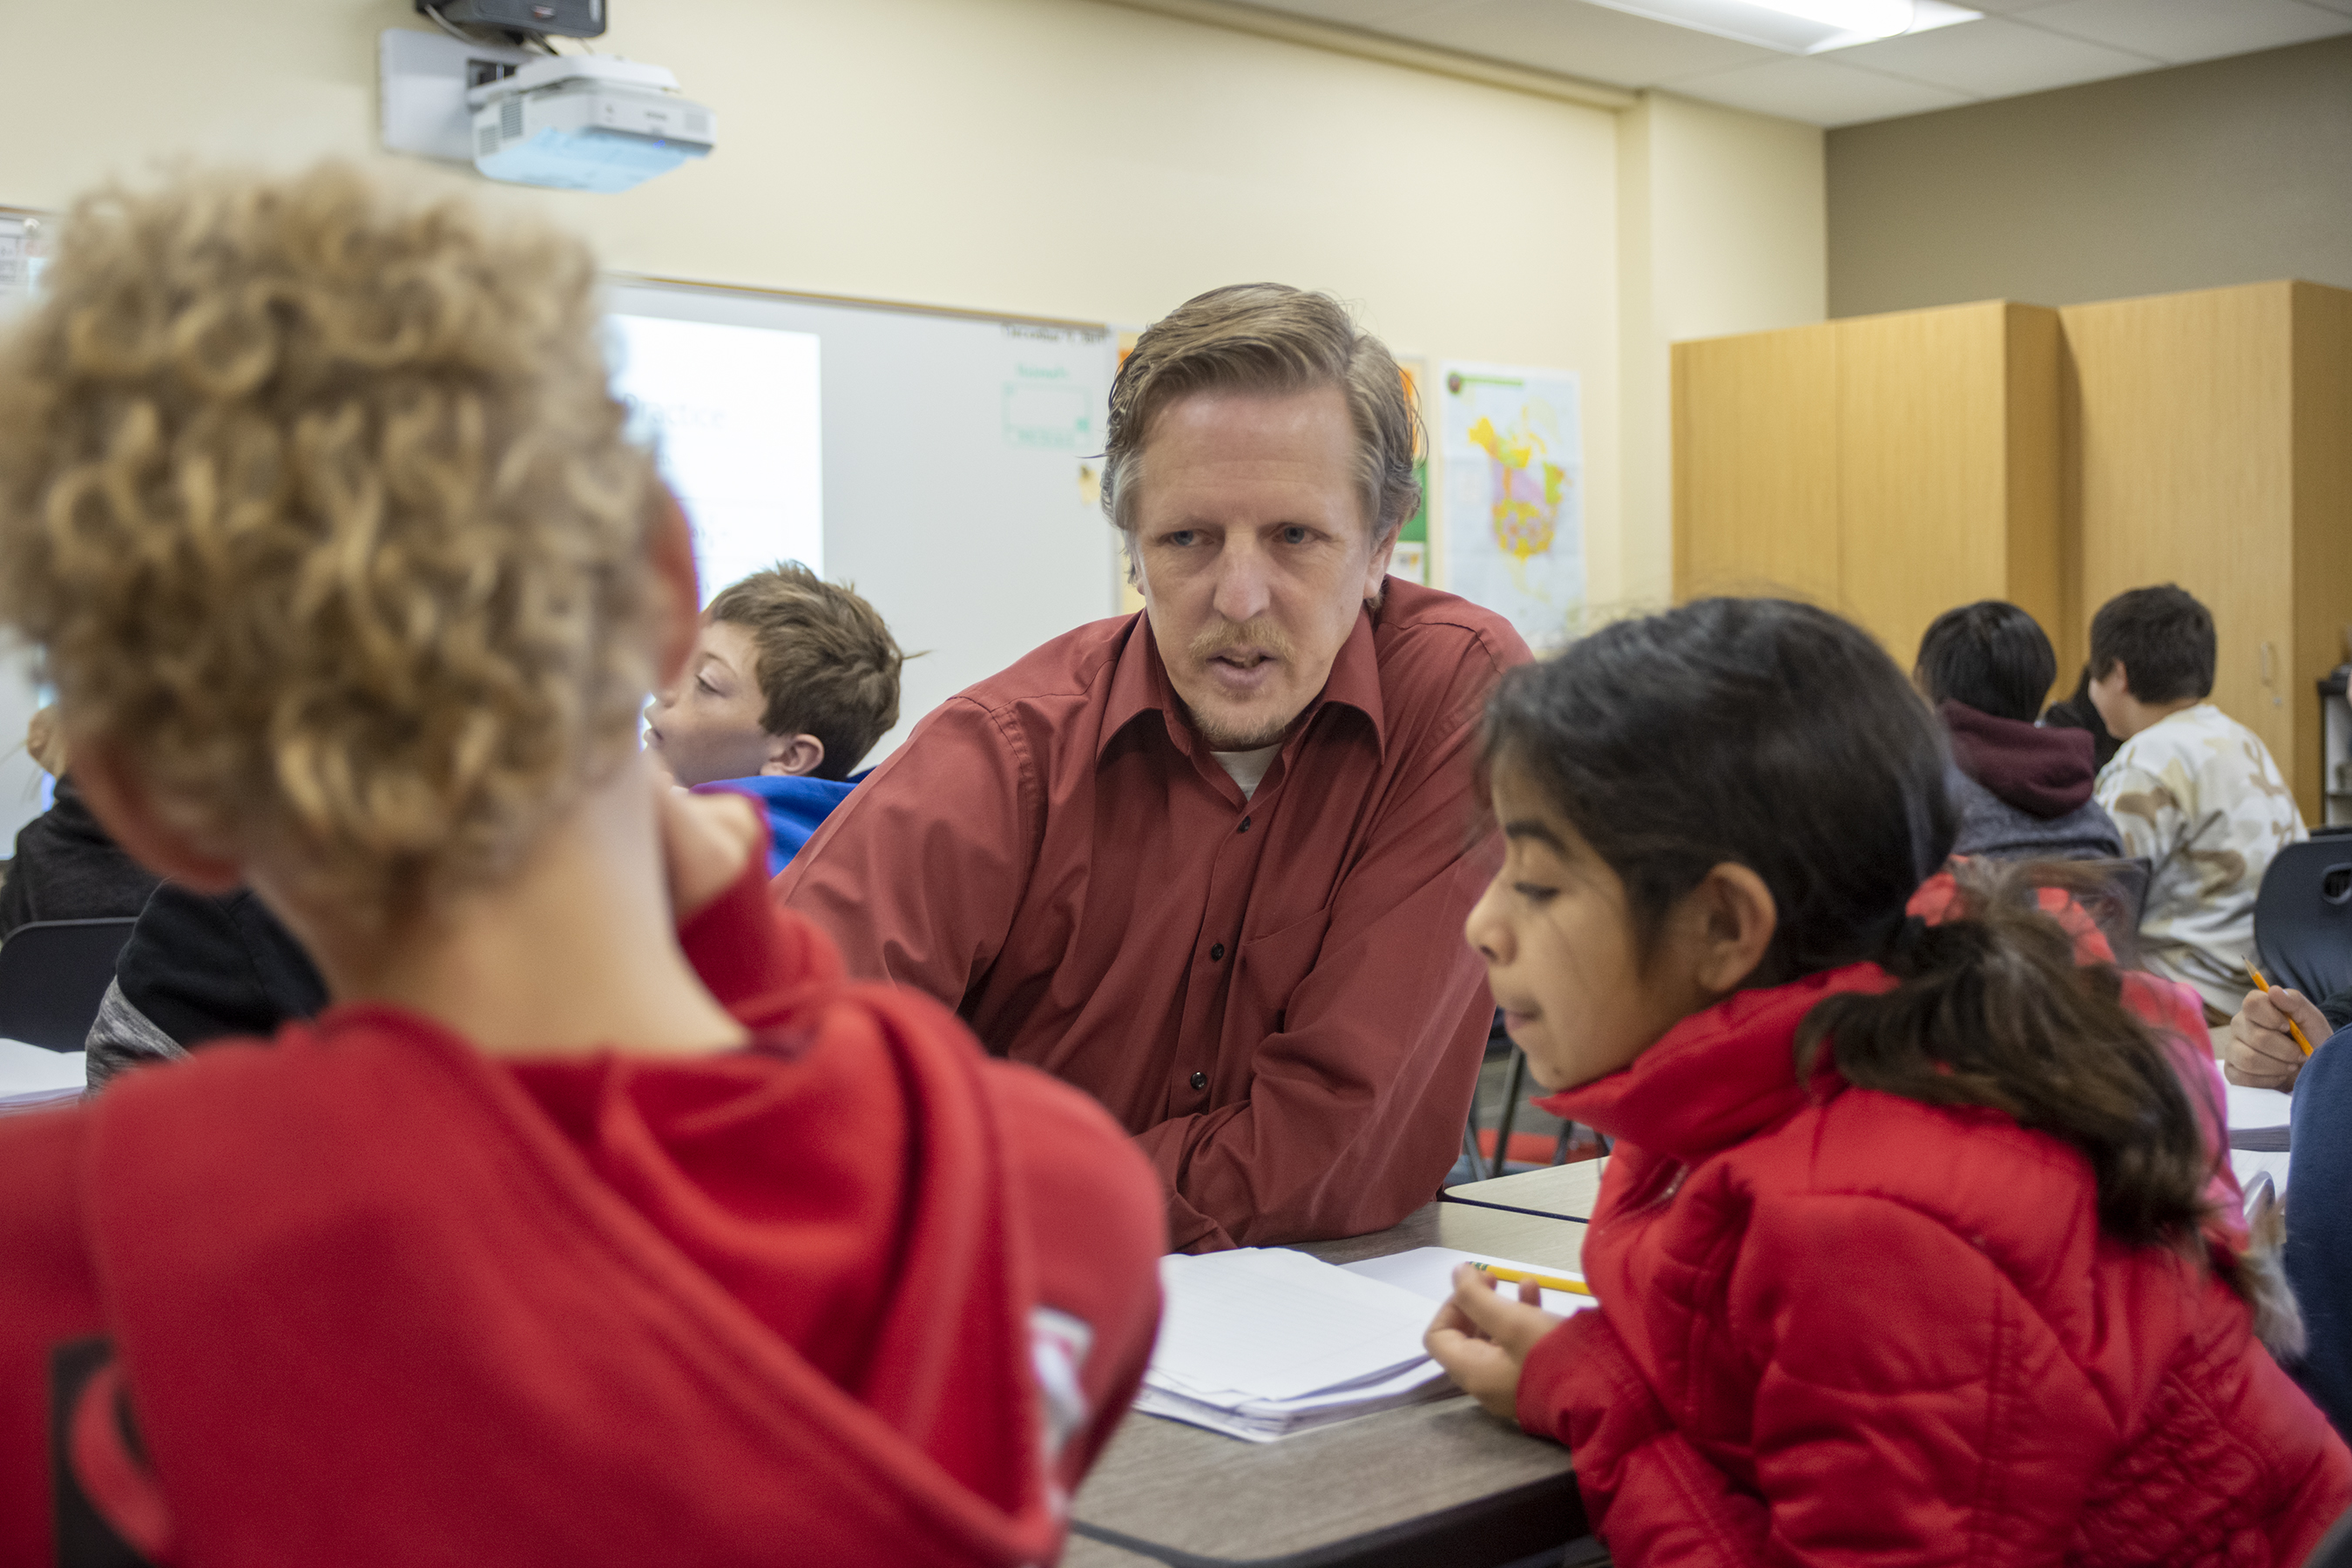 A teacher works with his students